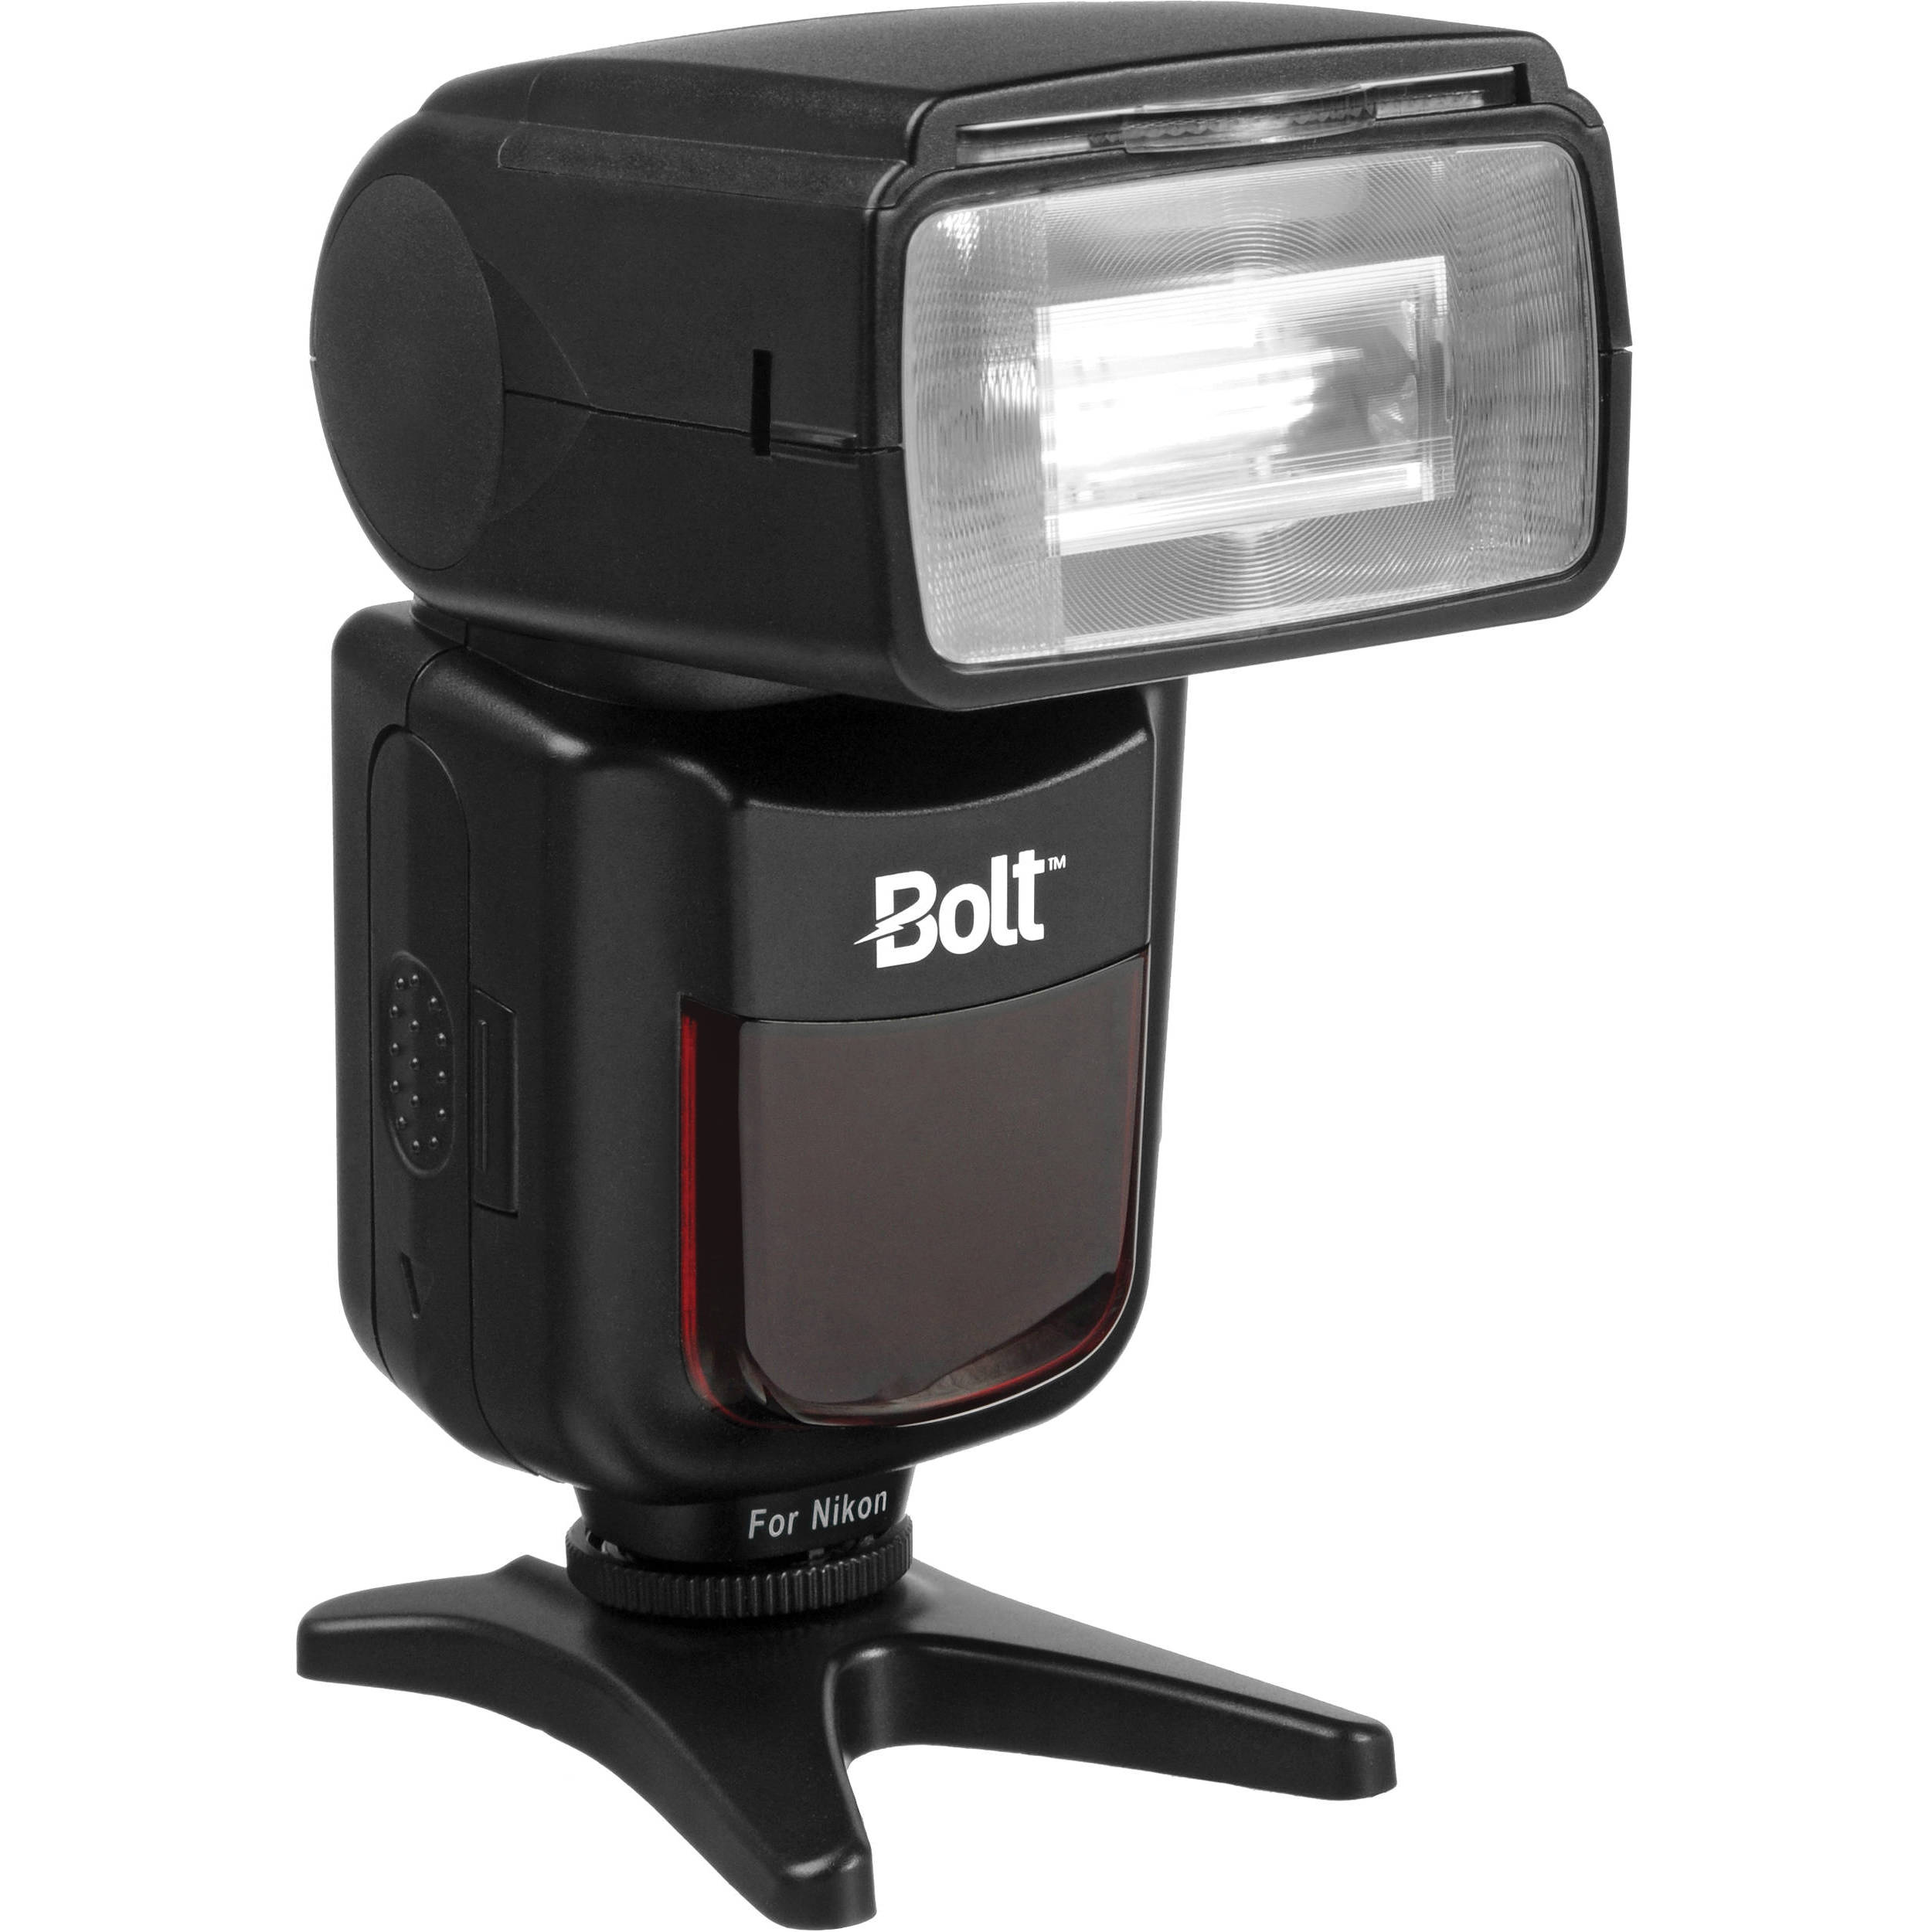 Bolt VX-710N TTL Flash for Nikon Cameras VX-710N B&H Photo Video